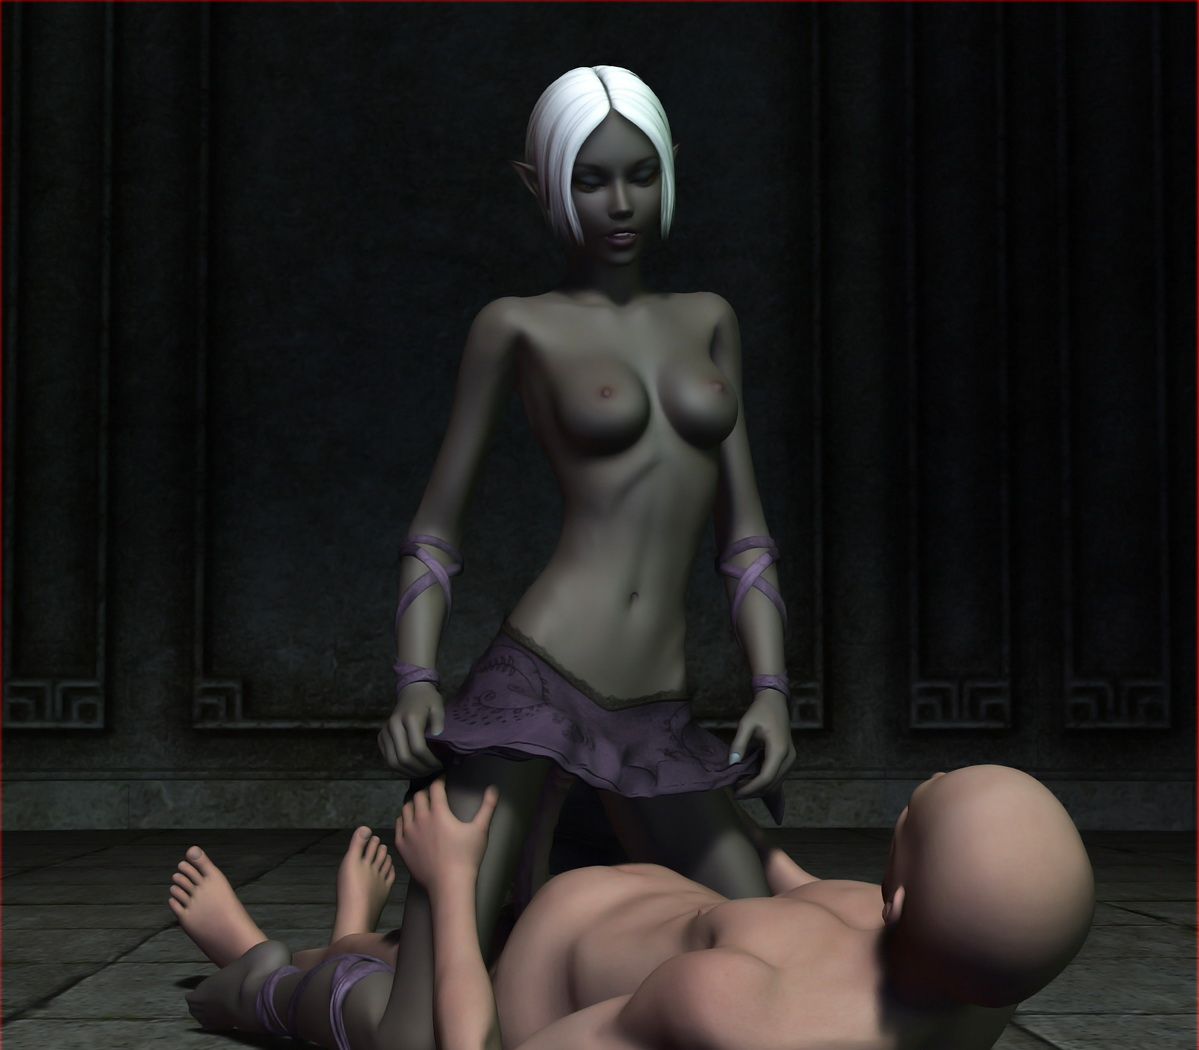 Demon girl game hacked sex sensual whore